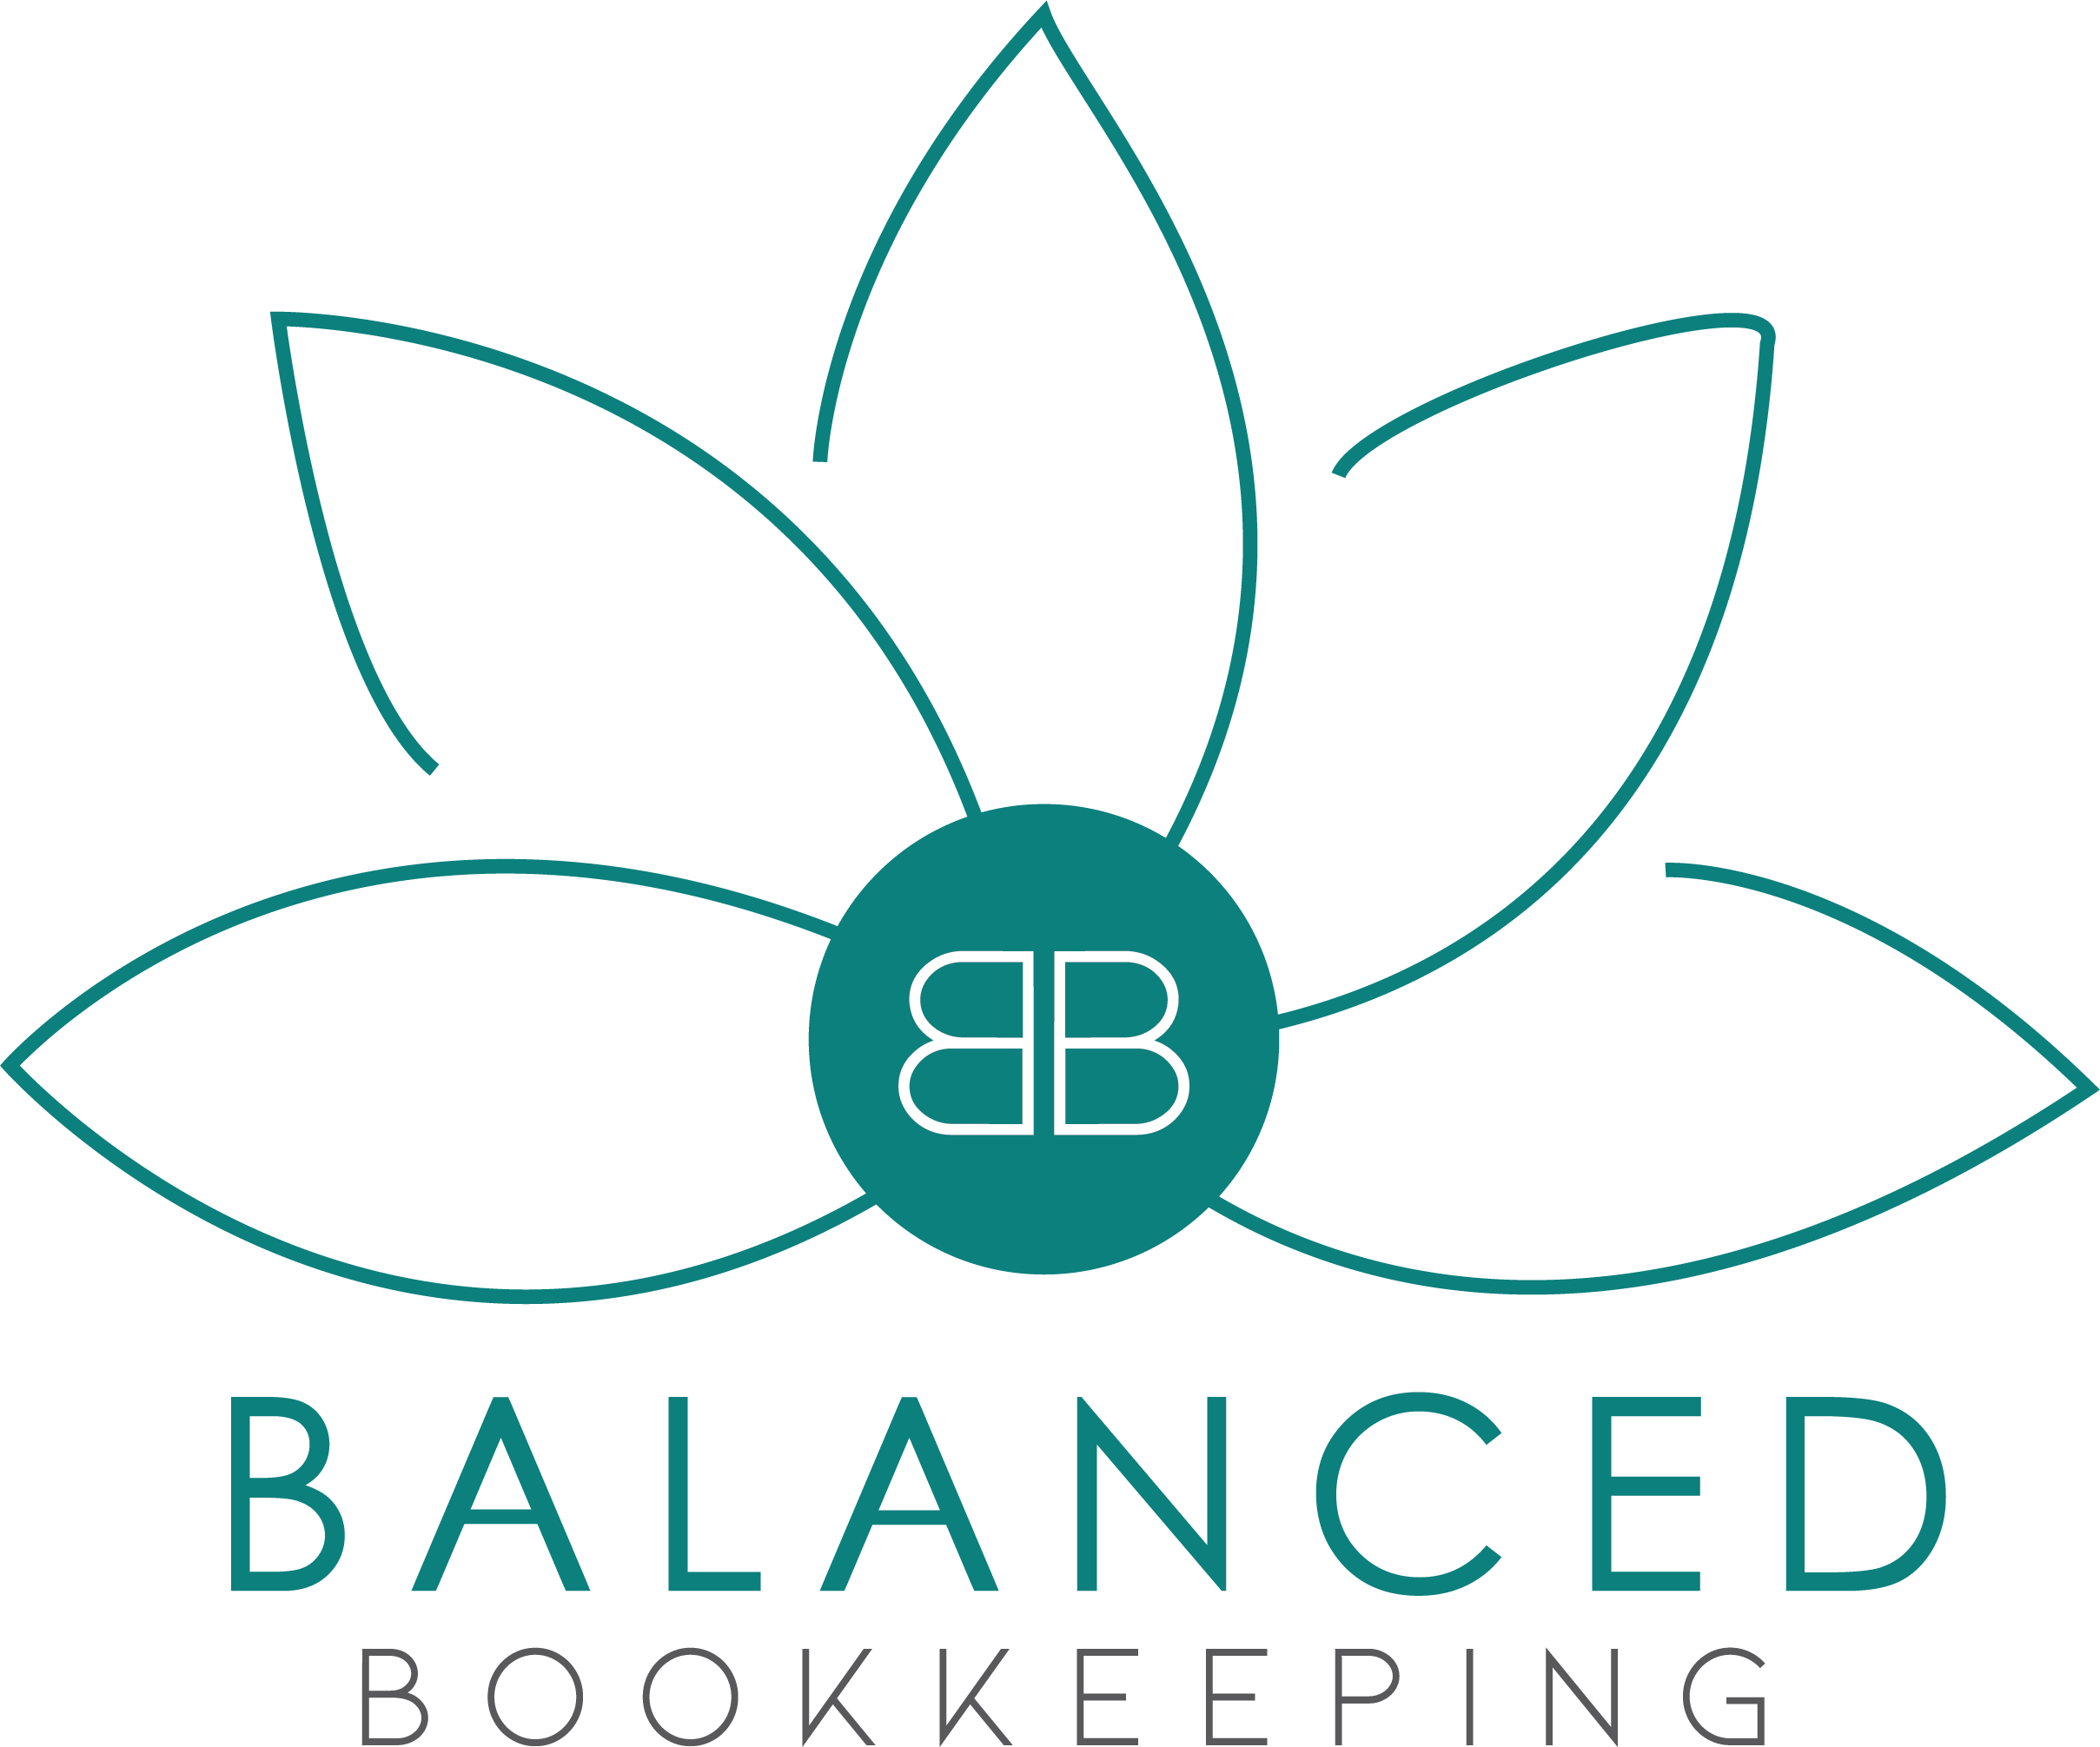 Balanced Bookkeeping